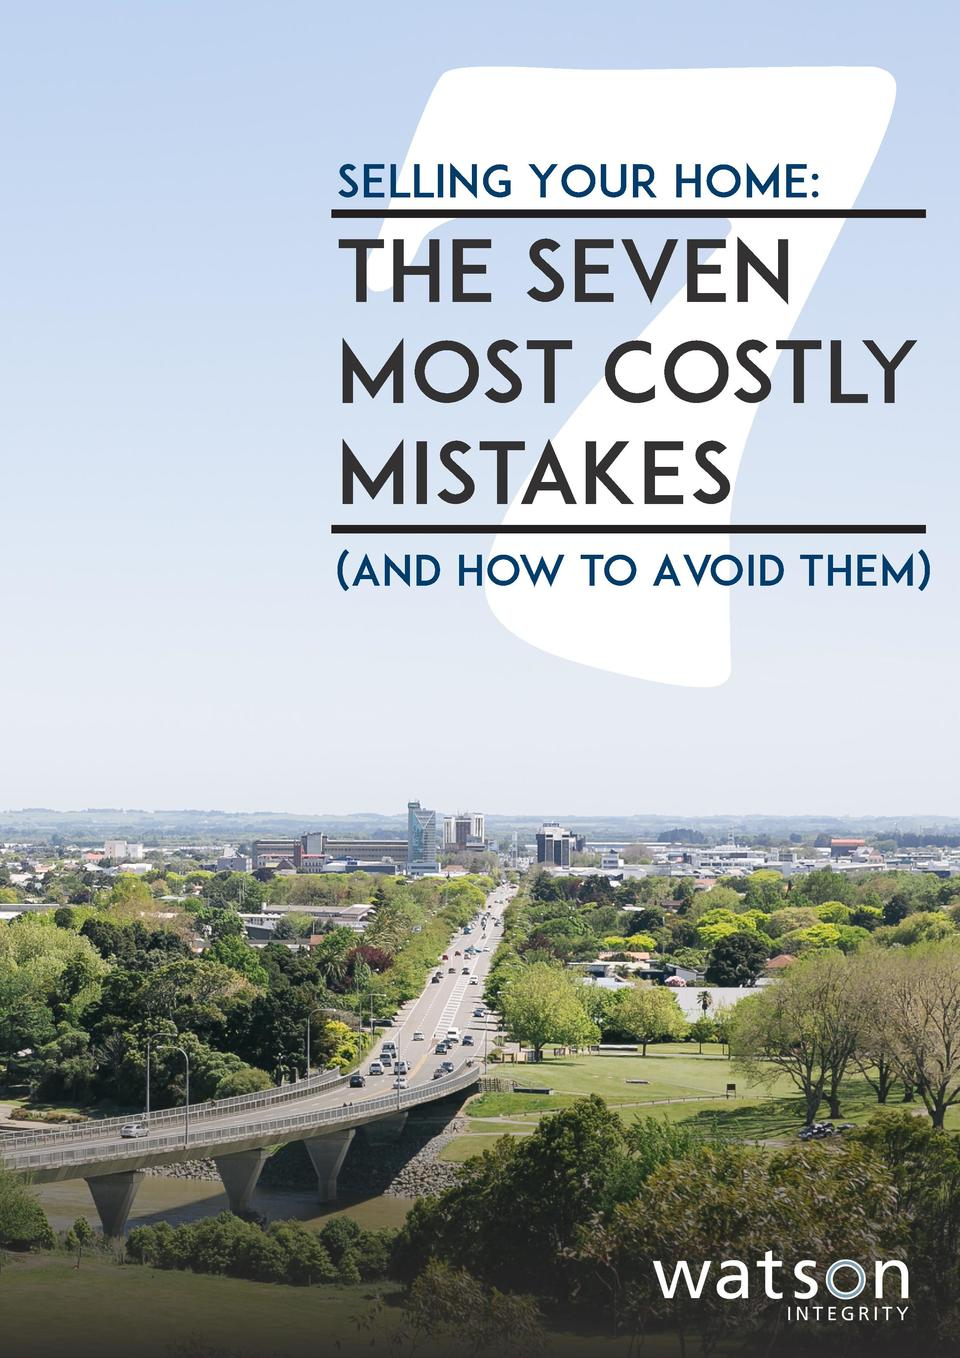 7  By Ken Watson, Watson Real Estate  Selling Your Home   The Seven Most Costly Mistakes   And How to Avoid Them   1